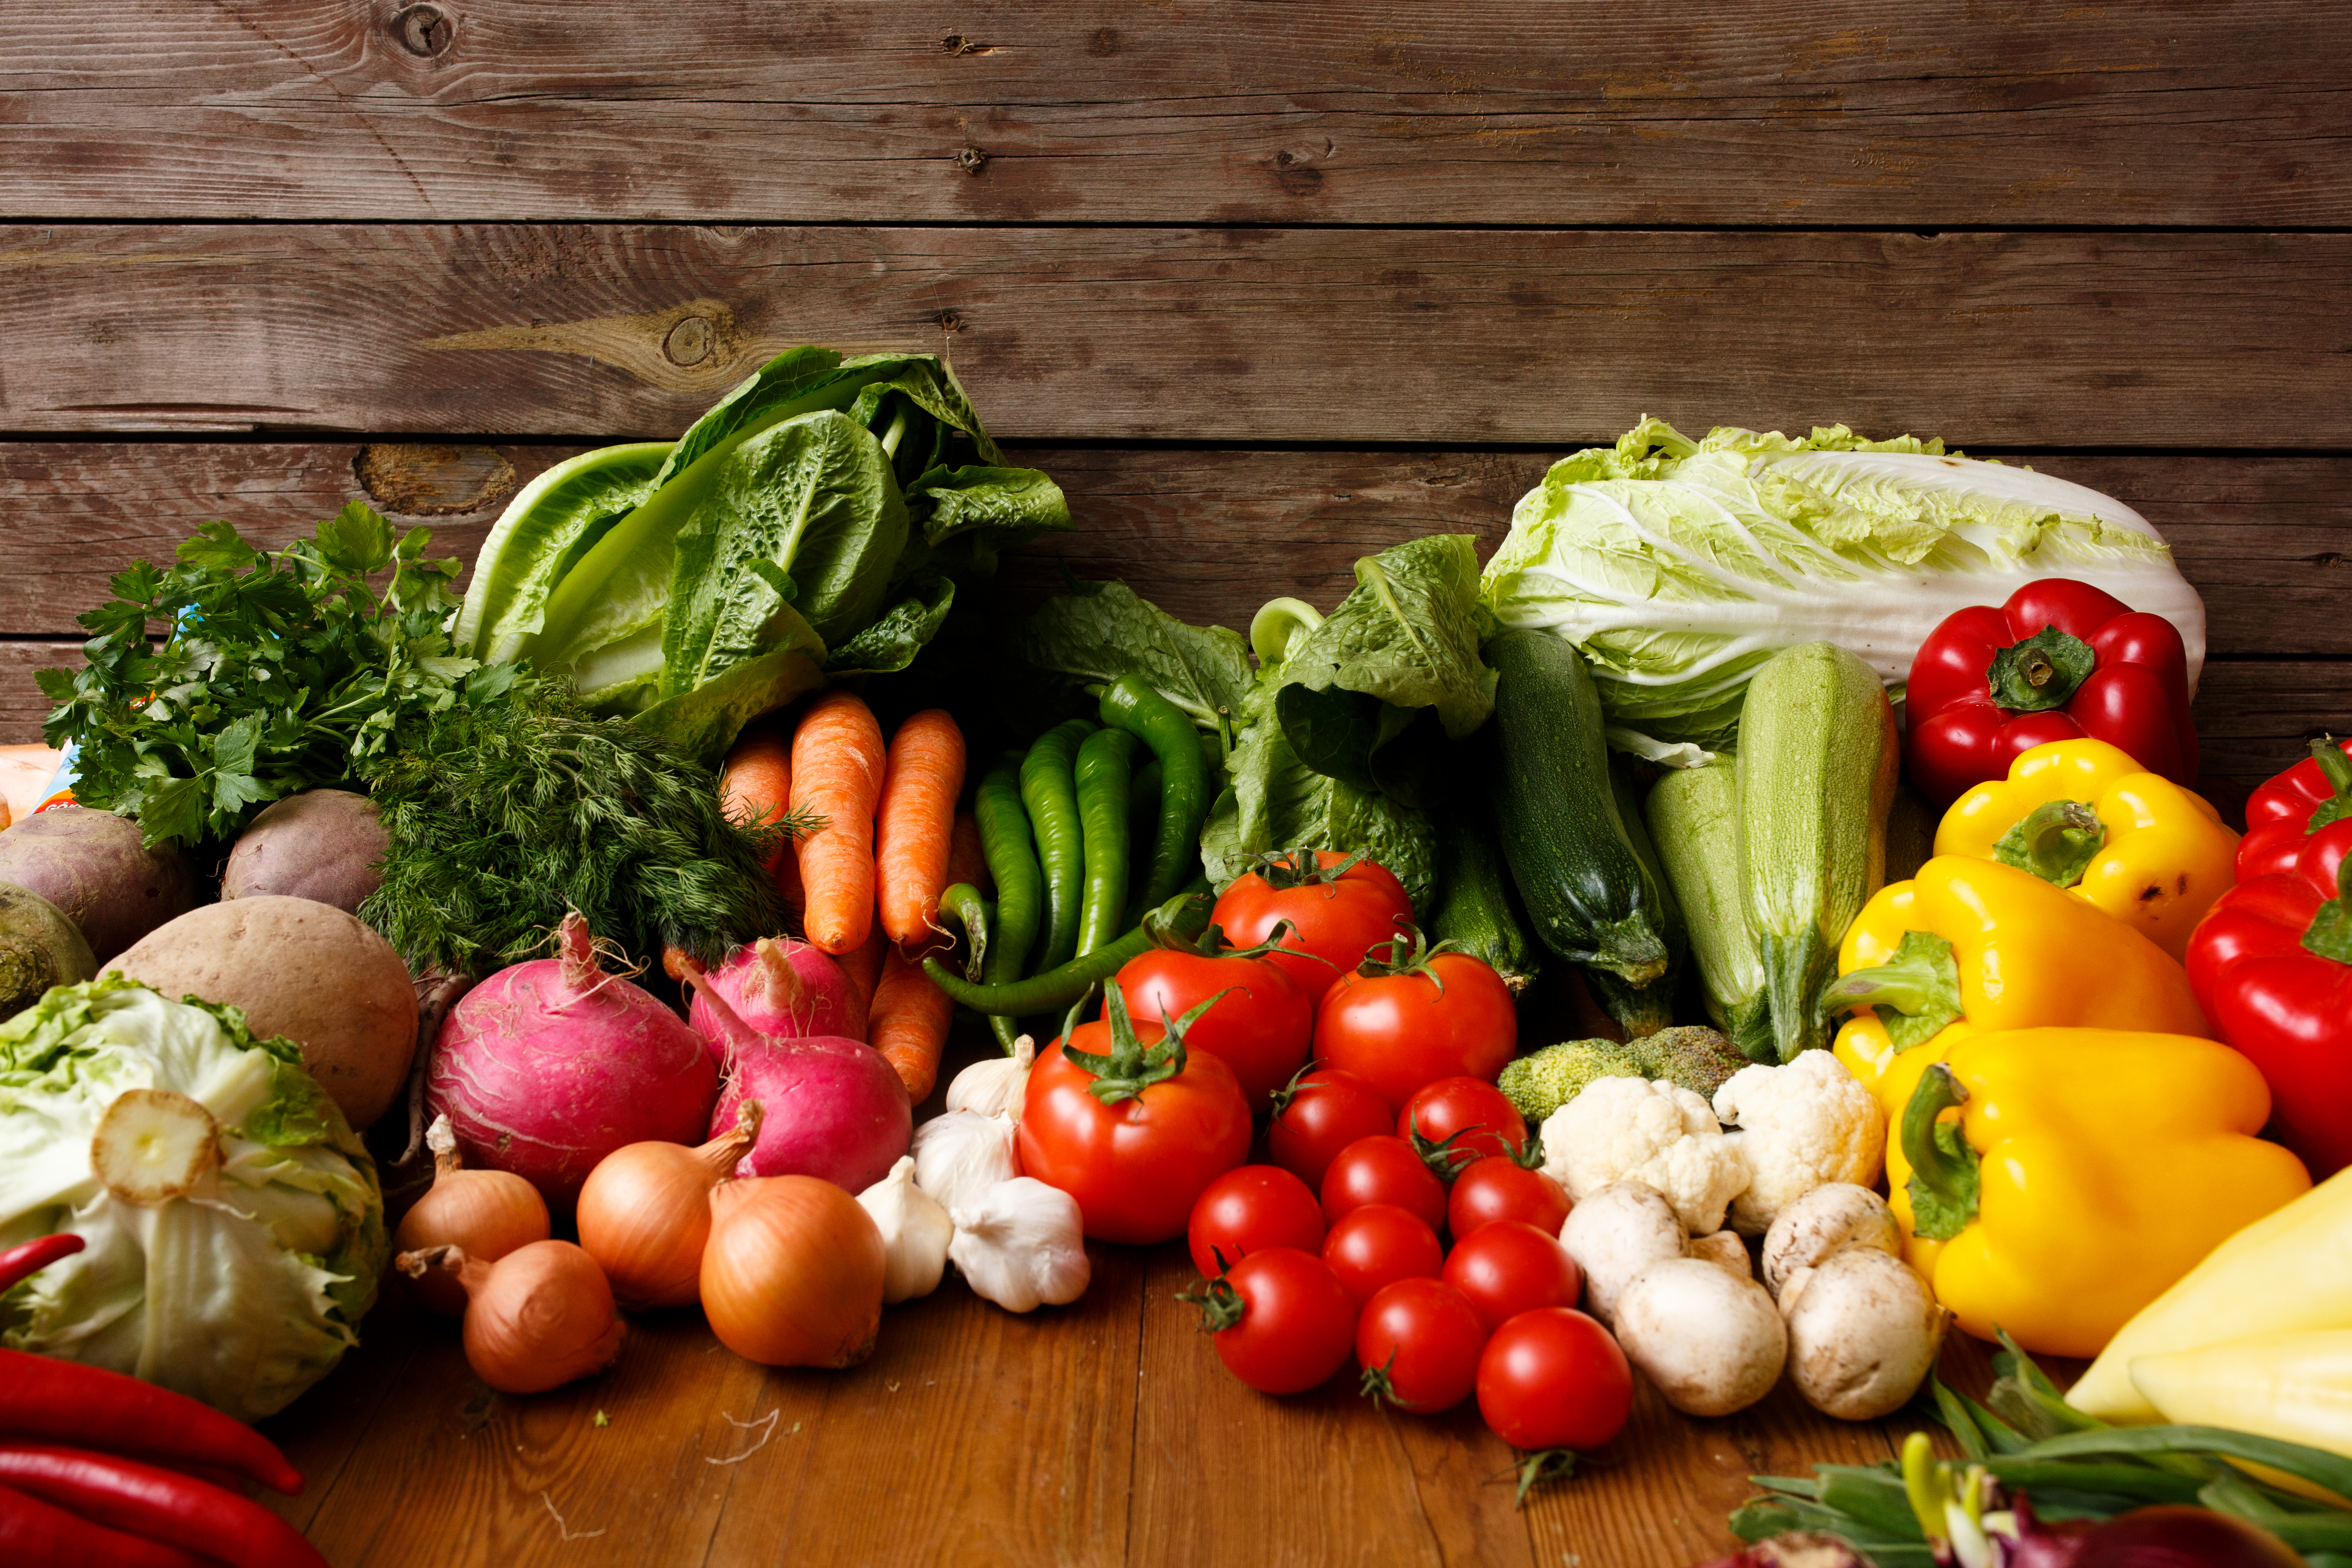 Did You Know? Surprising Facts About Common Veggies